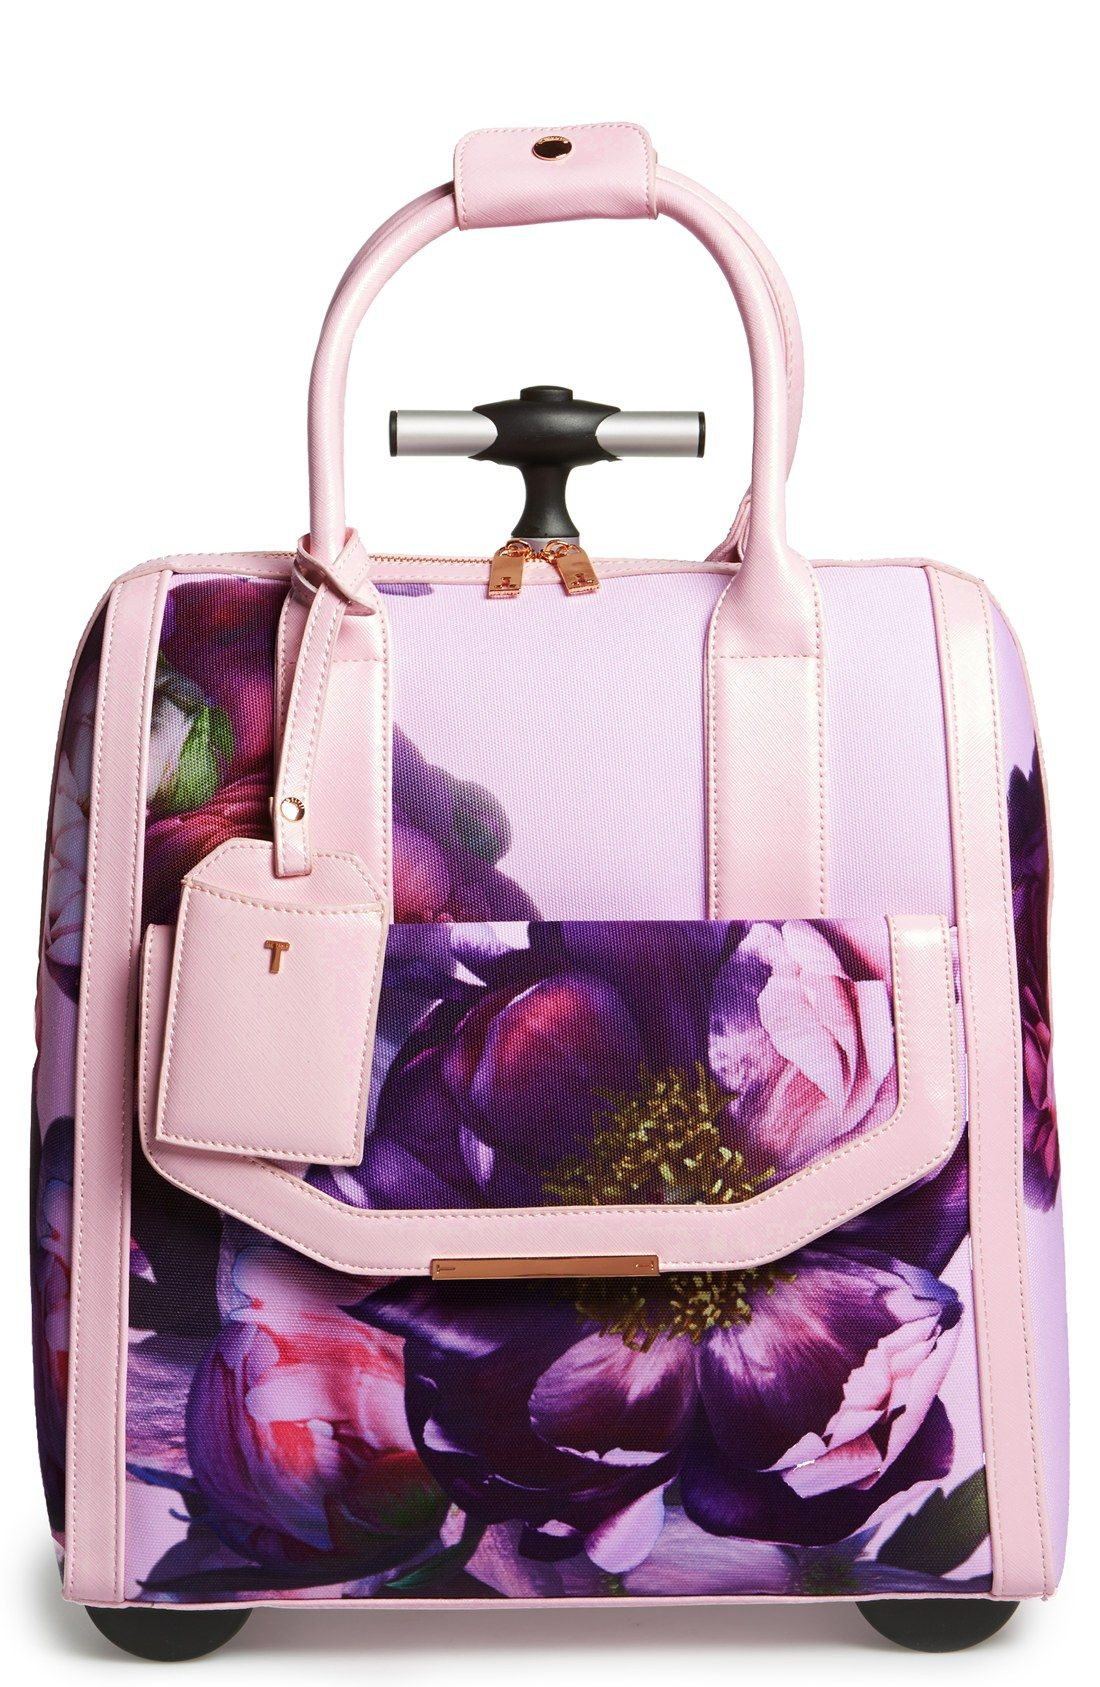 Can't wait to travel with this vibrant floral Ted Baker London ...